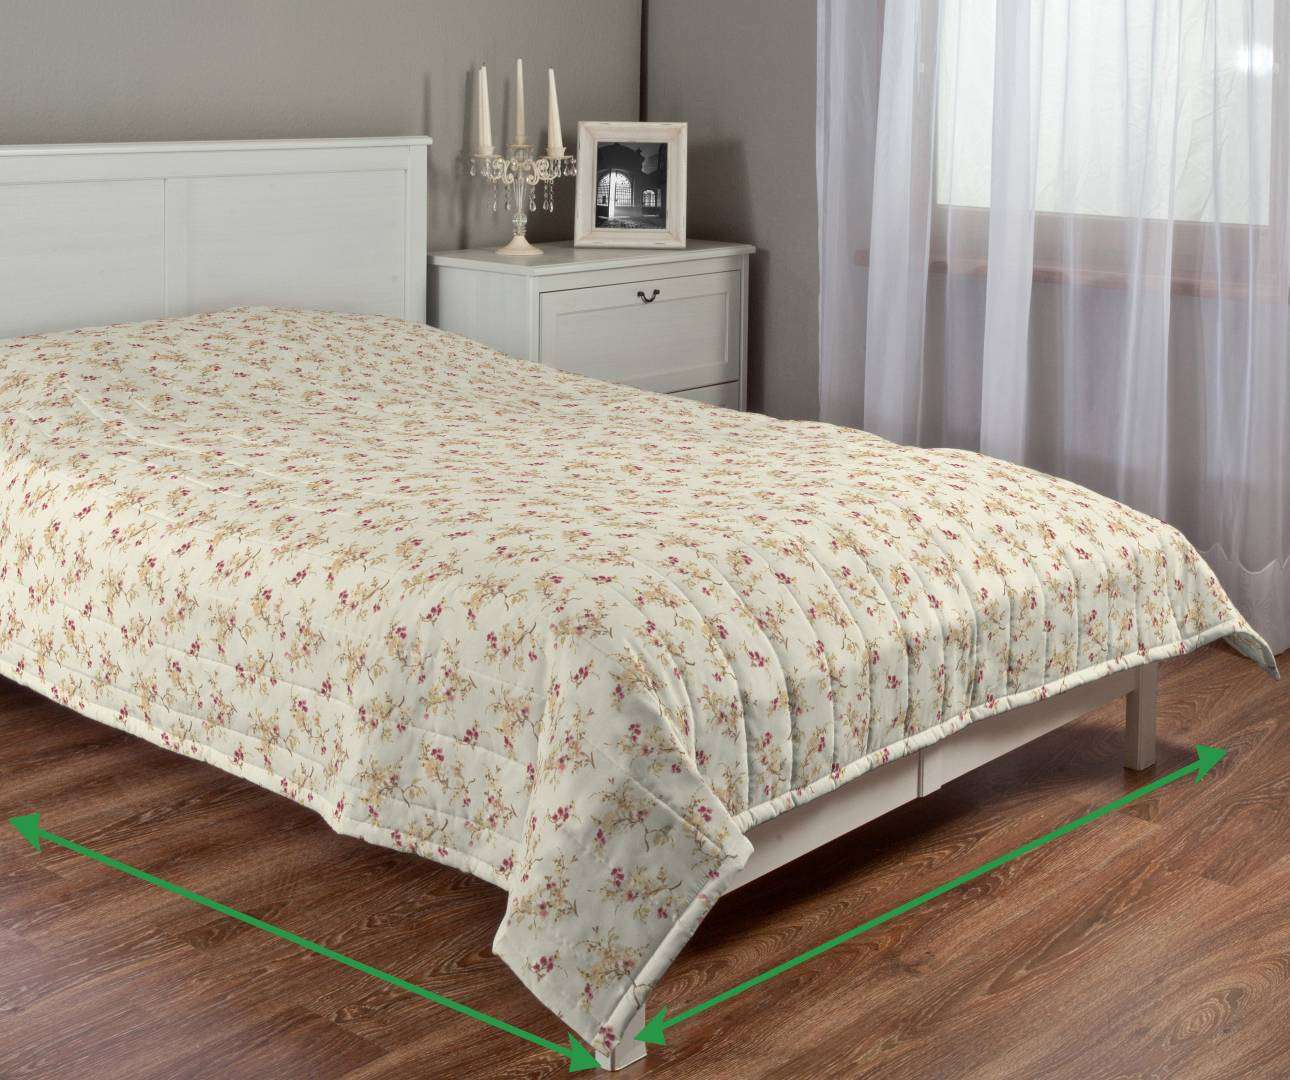 Quilted throw (vertical quilt pattern) in collection Mirella, fabric: 141-11